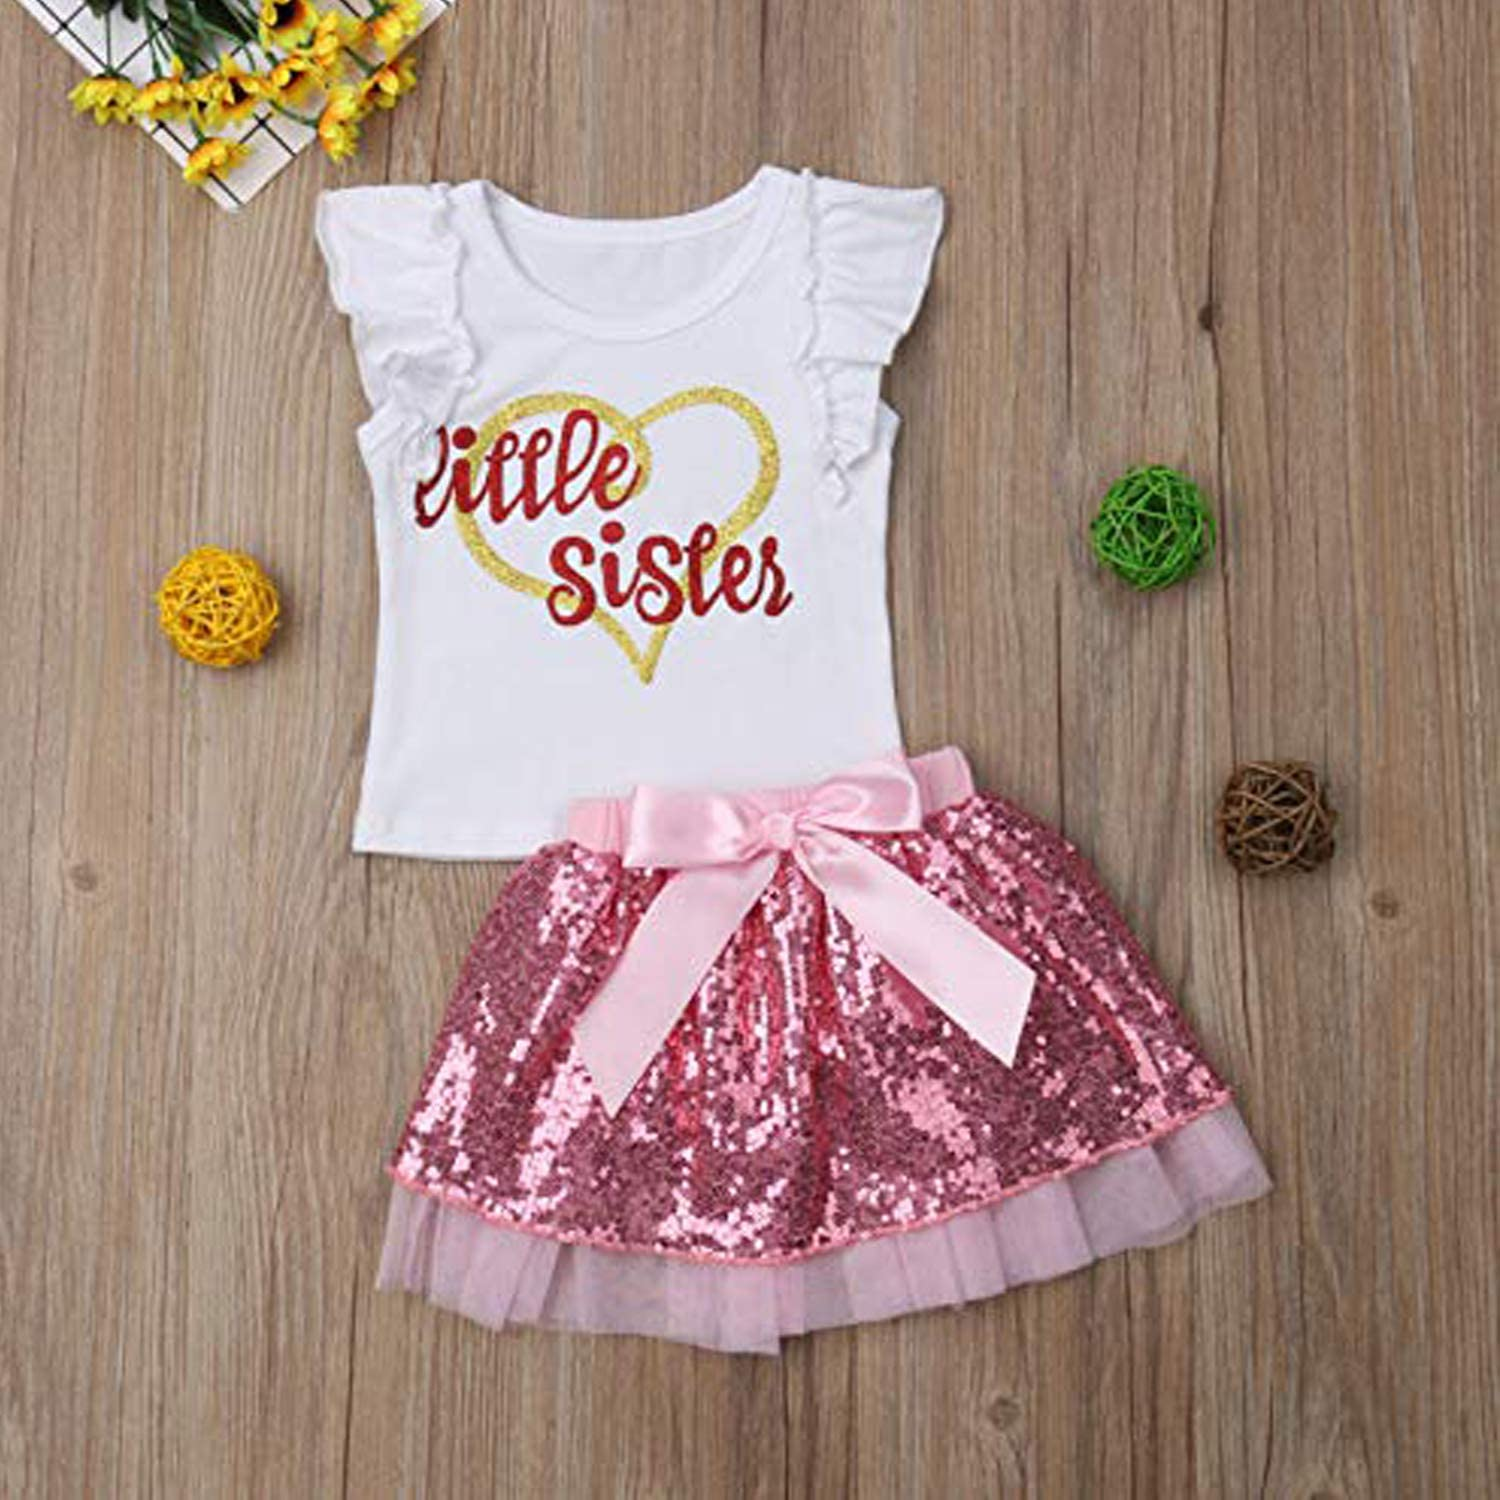 HESHENG Baby Girls 1st Birthday Floral Romper Top+Tutu Lace Skirt Dress 2Pcs Outfits Set